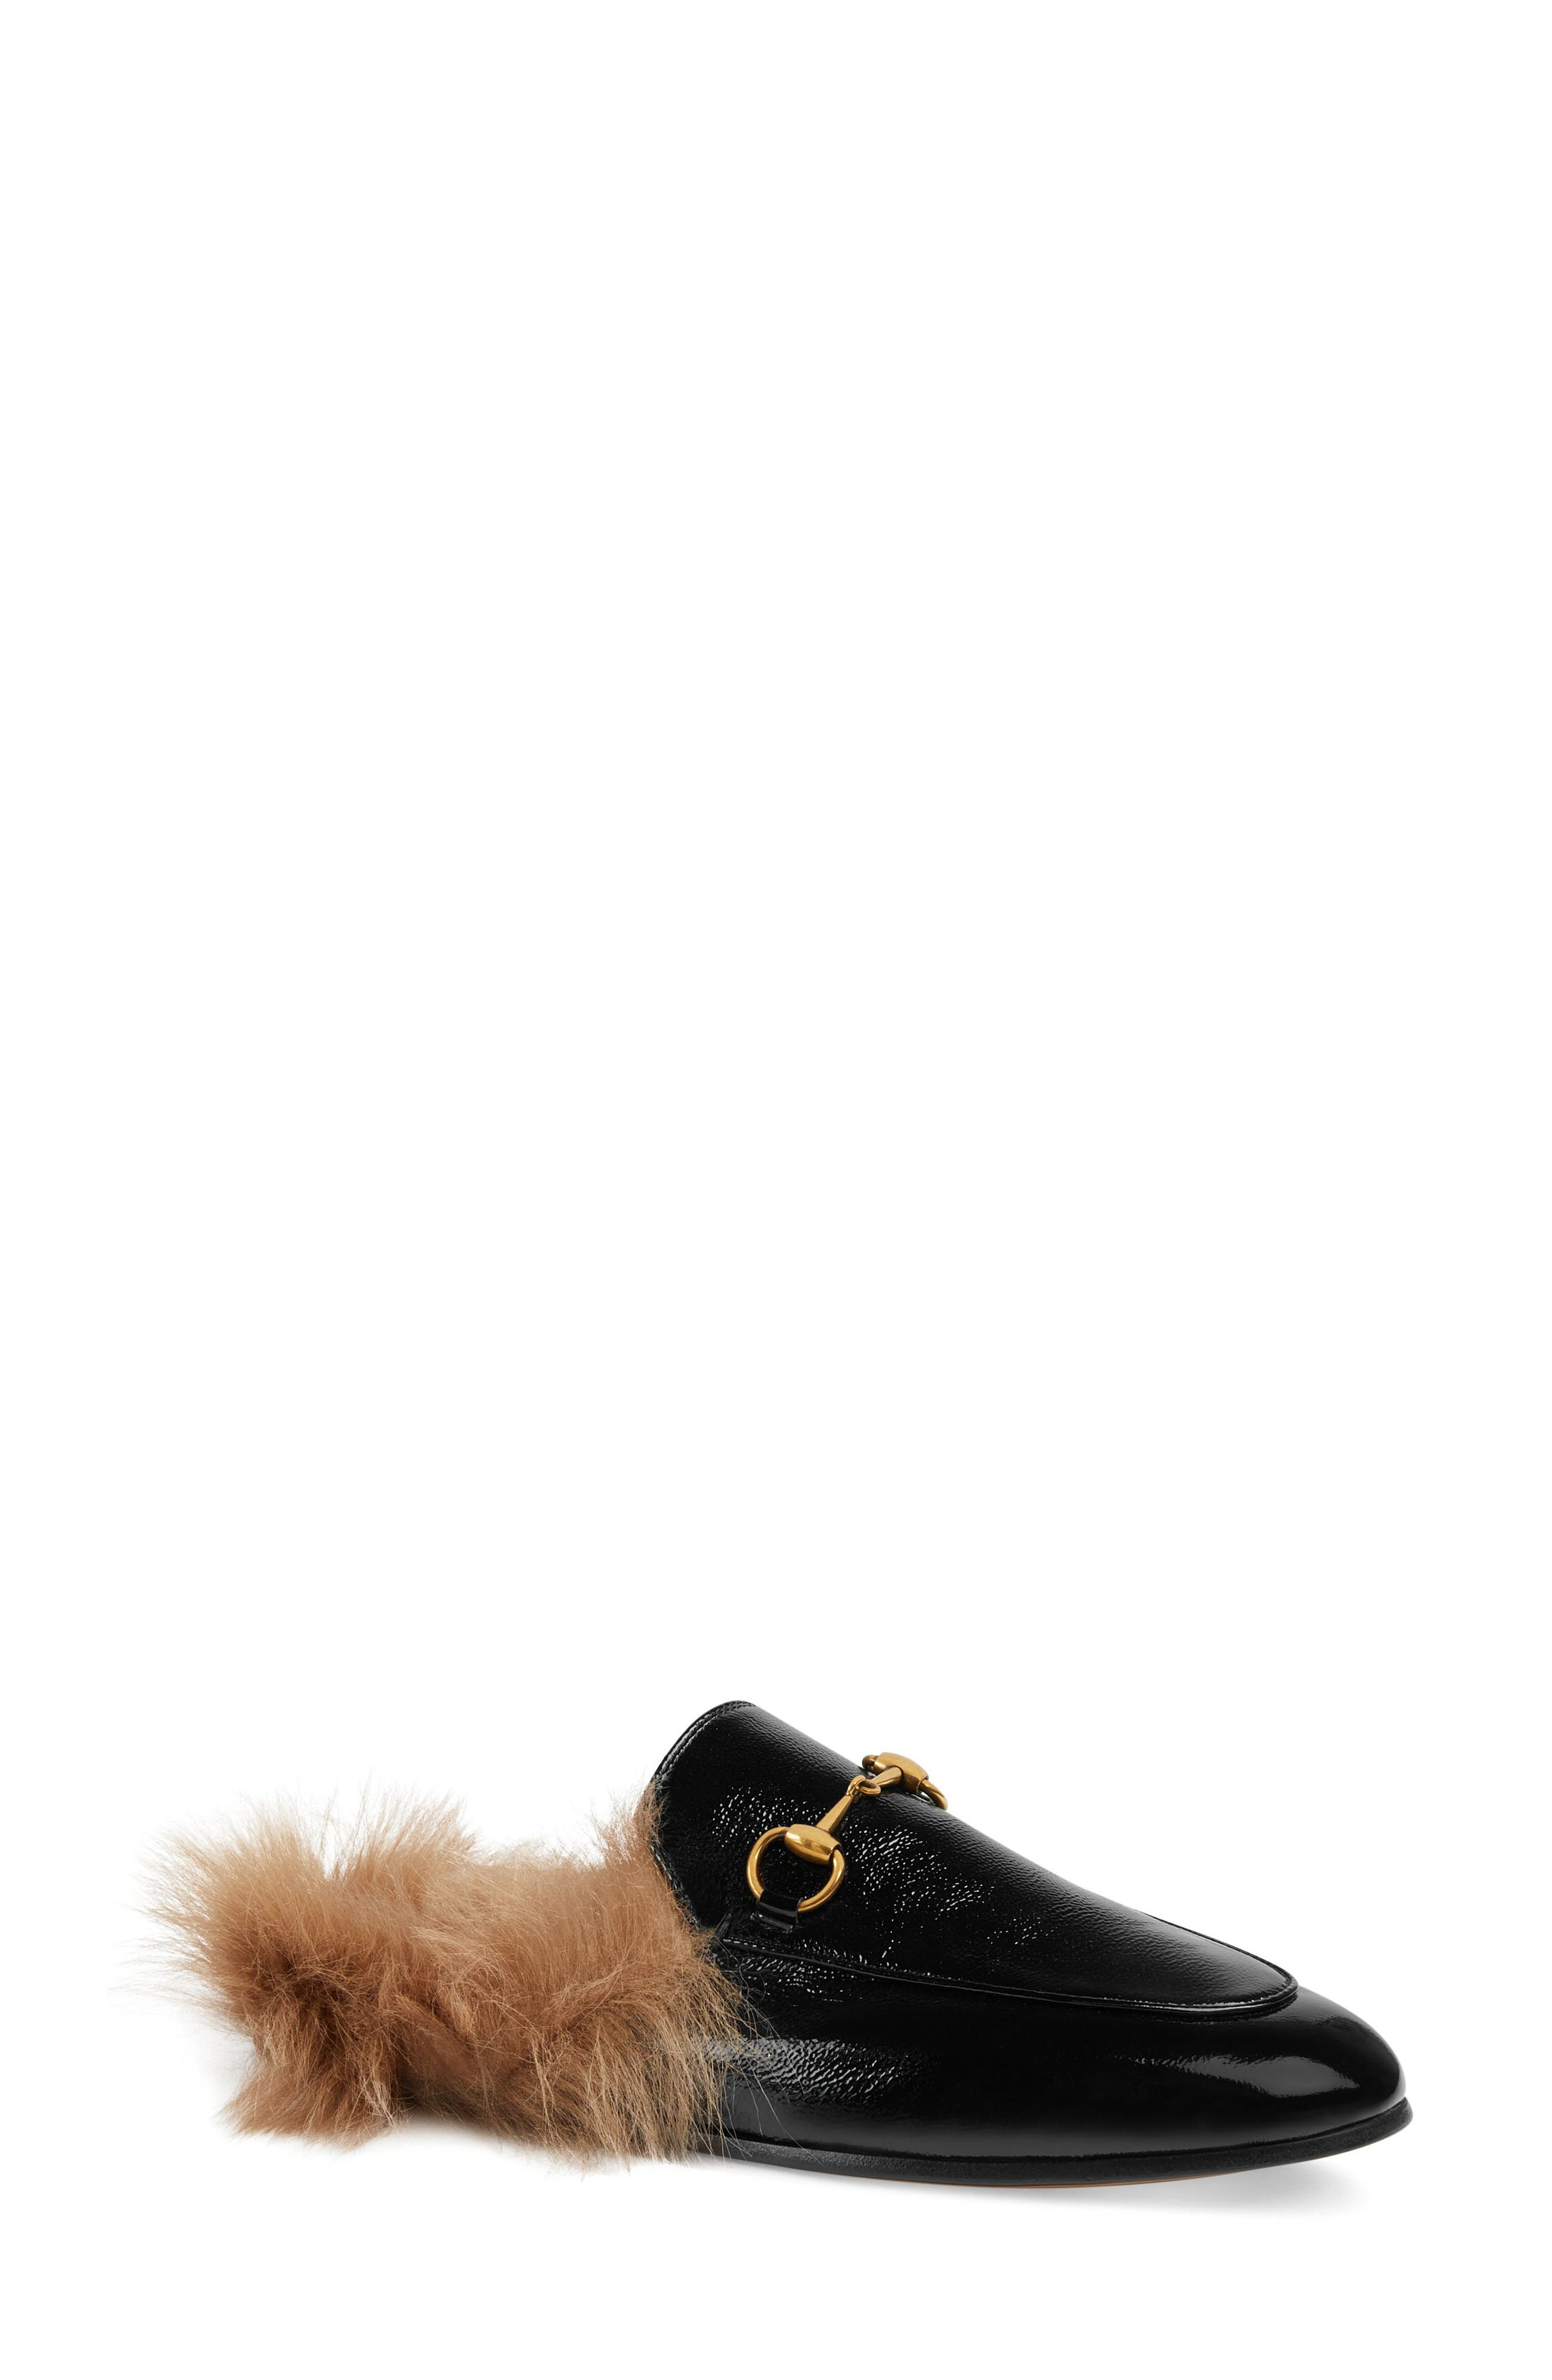 GUCCI, Princetown Genuine Shearling Loafer Mule, Main thumbnail 1, color, BLACK PATENT